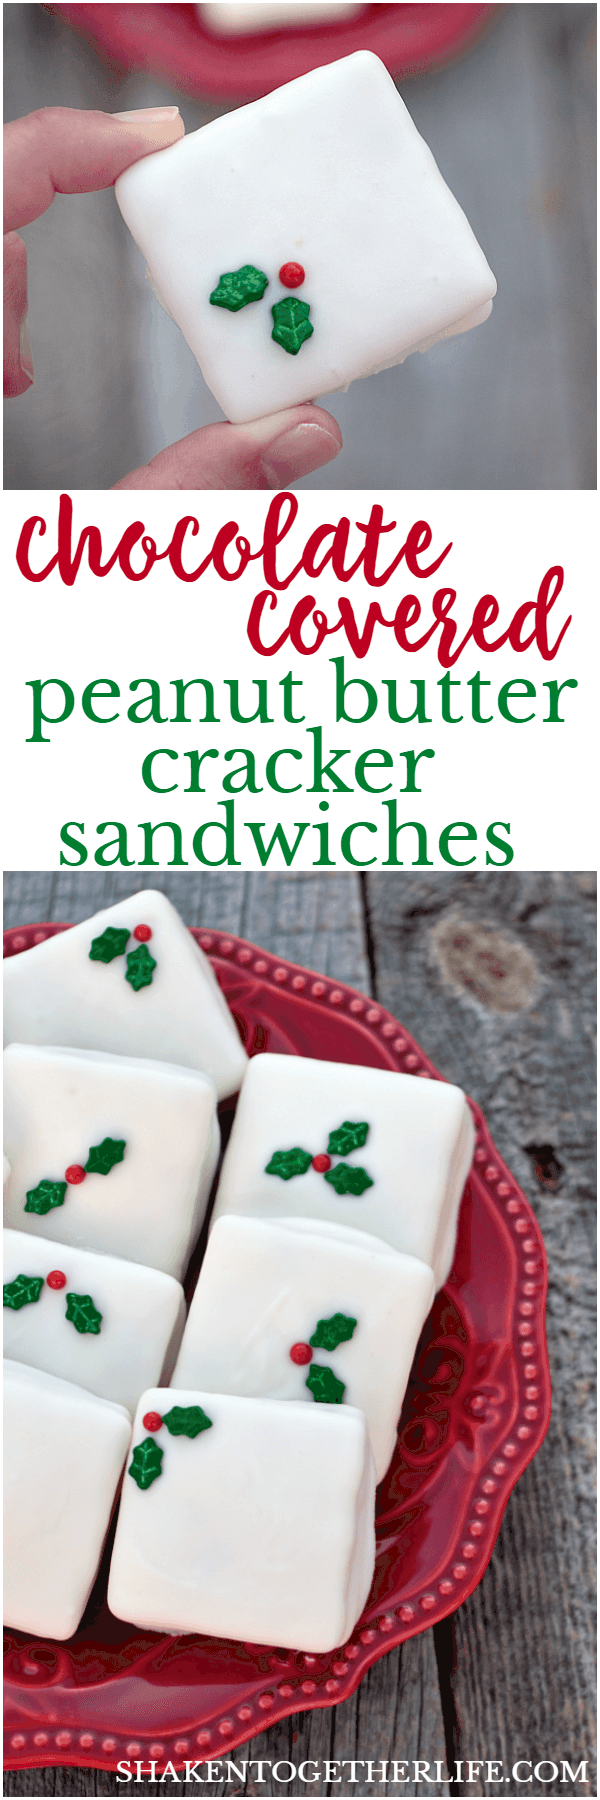 Easy, no-bake Chocolate Covered Peanut Butter Cracker Sandwiches! These are almost too pretty to eat!